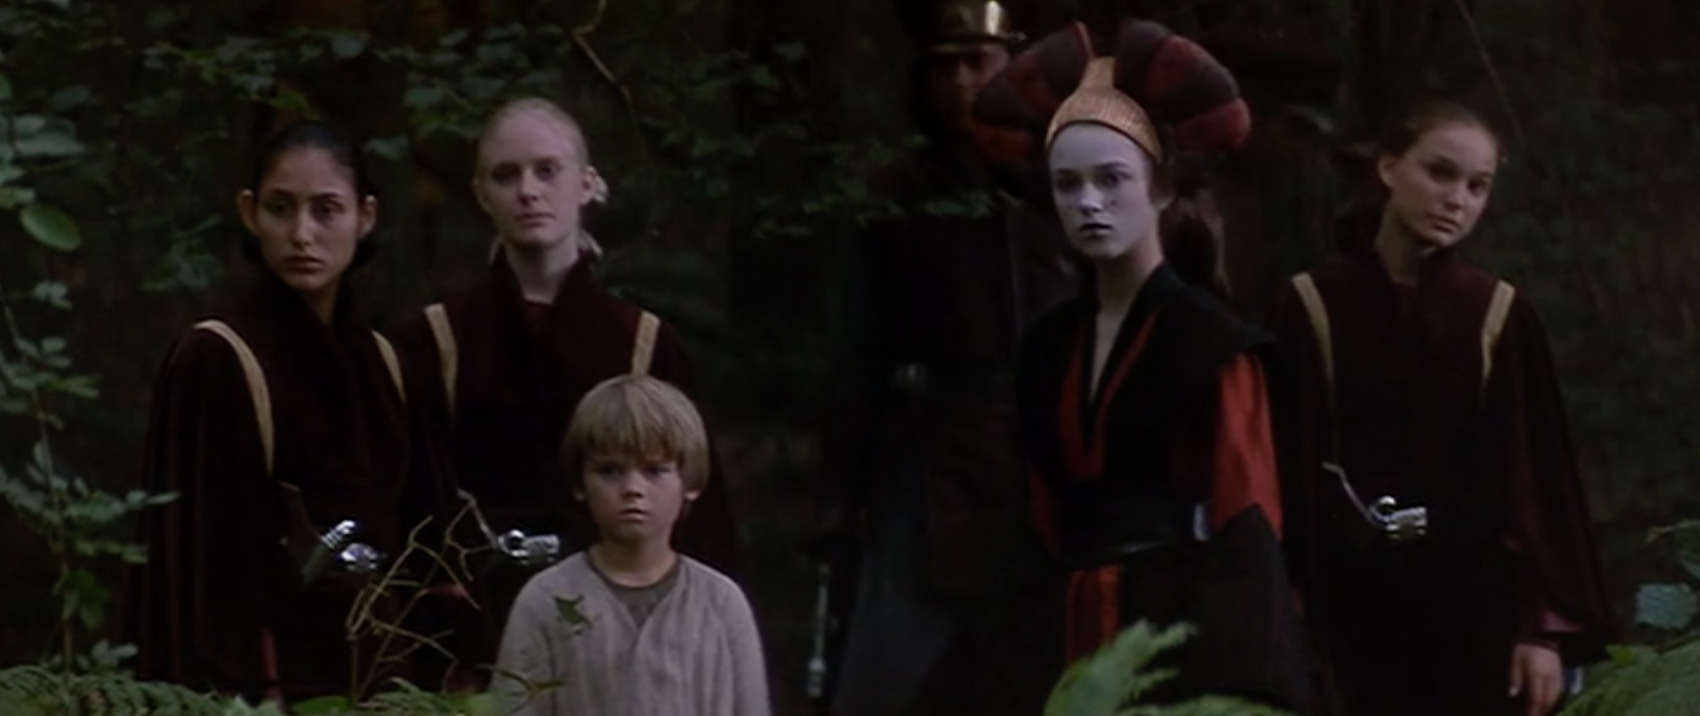 Good Rabe, Eirtae, Sache (dupe), and padme